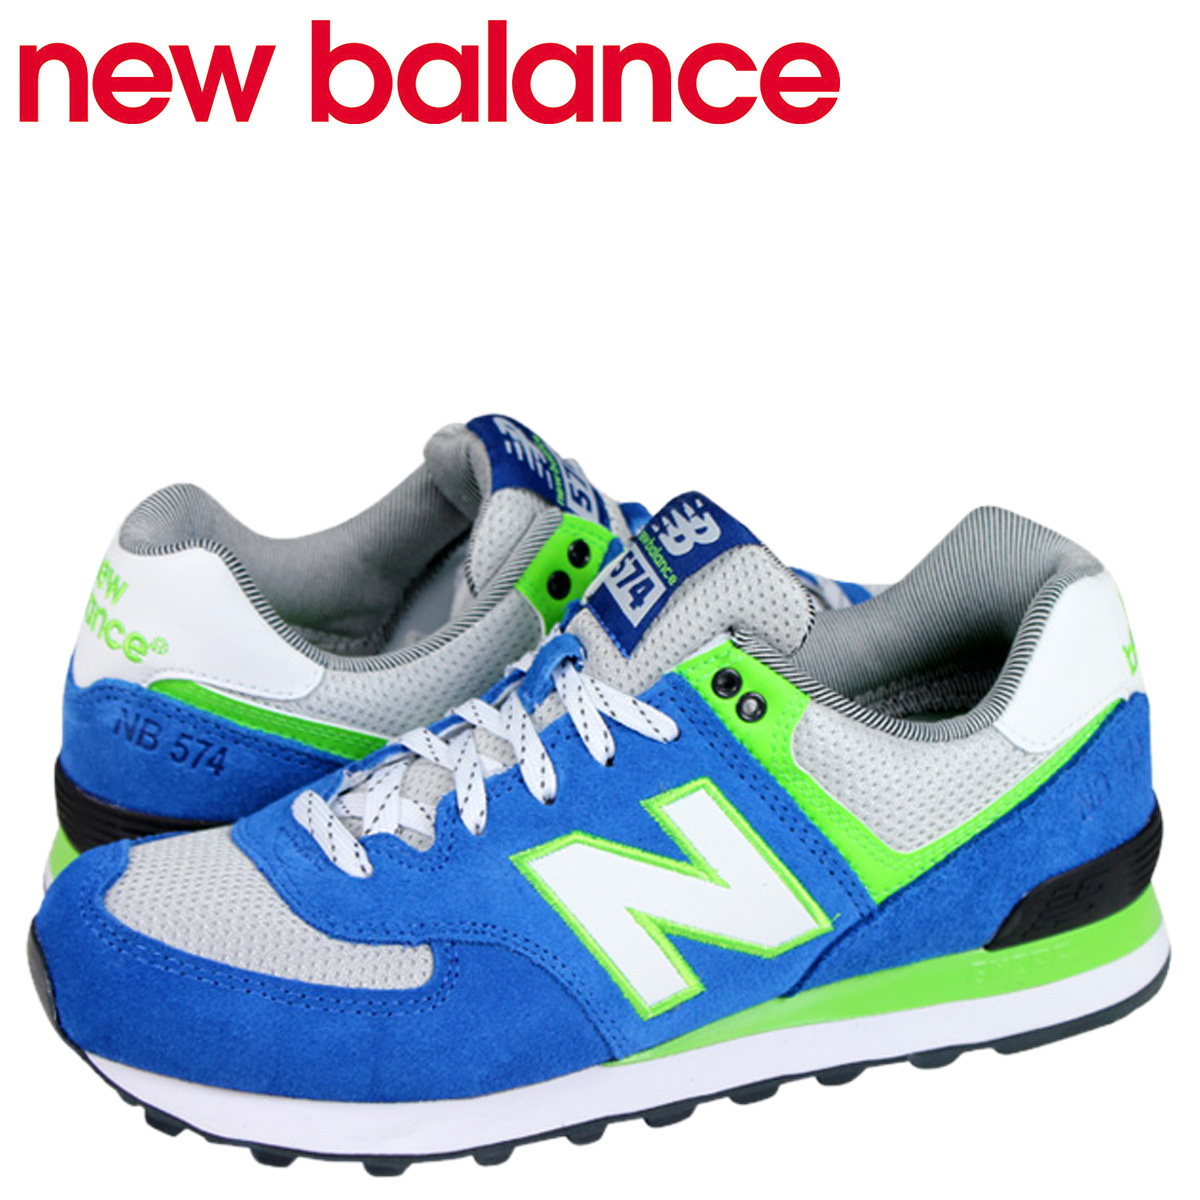 new balance 574 men blue